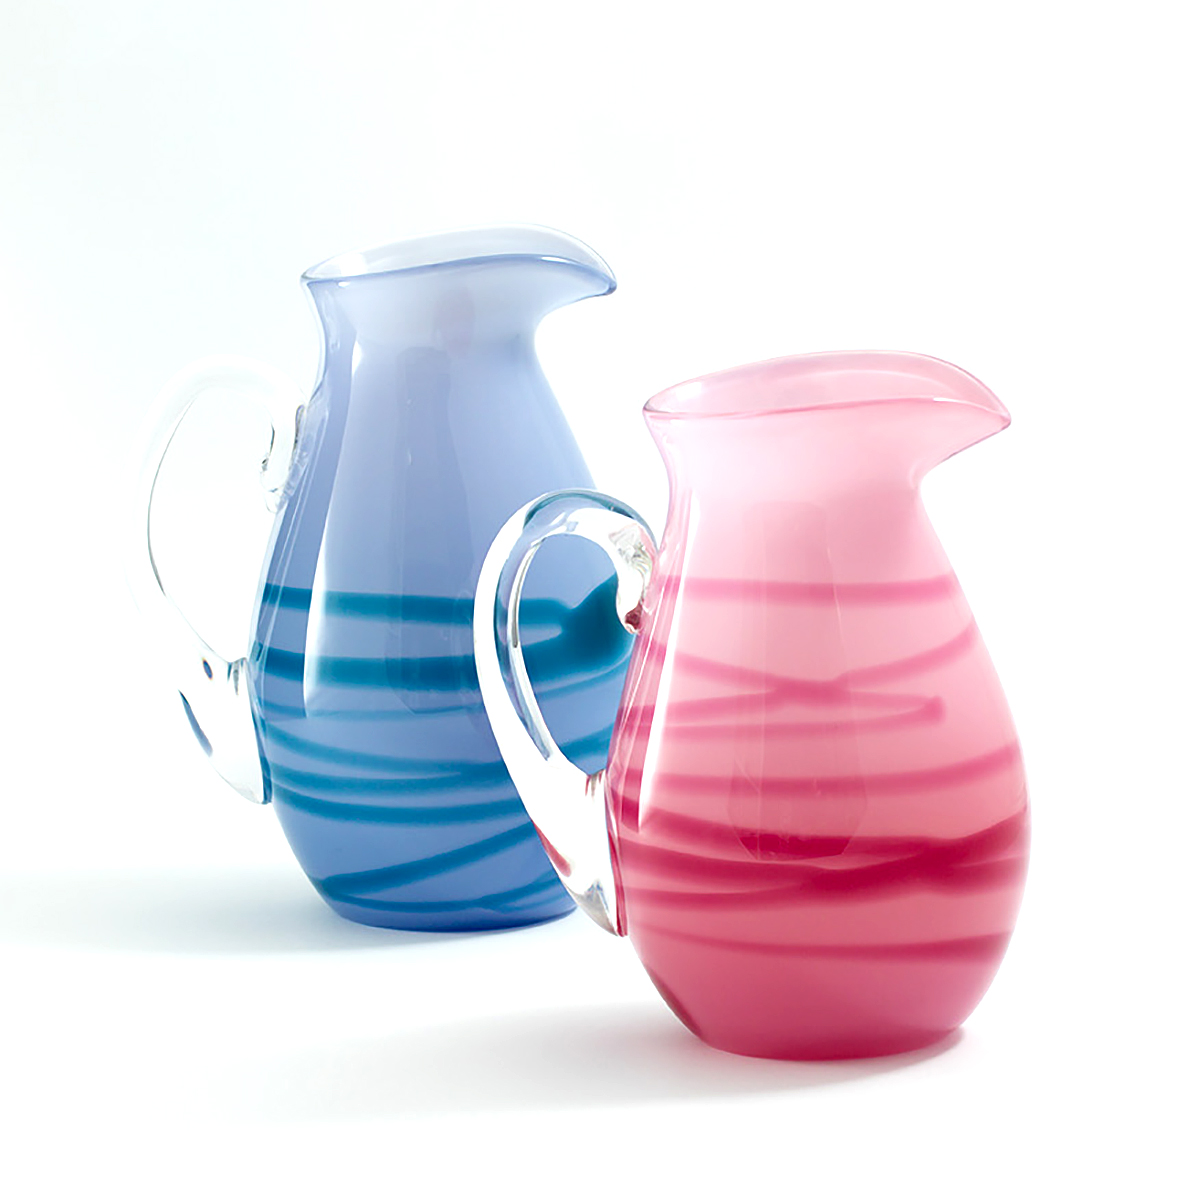 Meg McGregor, 'Swirl Jugs', glass